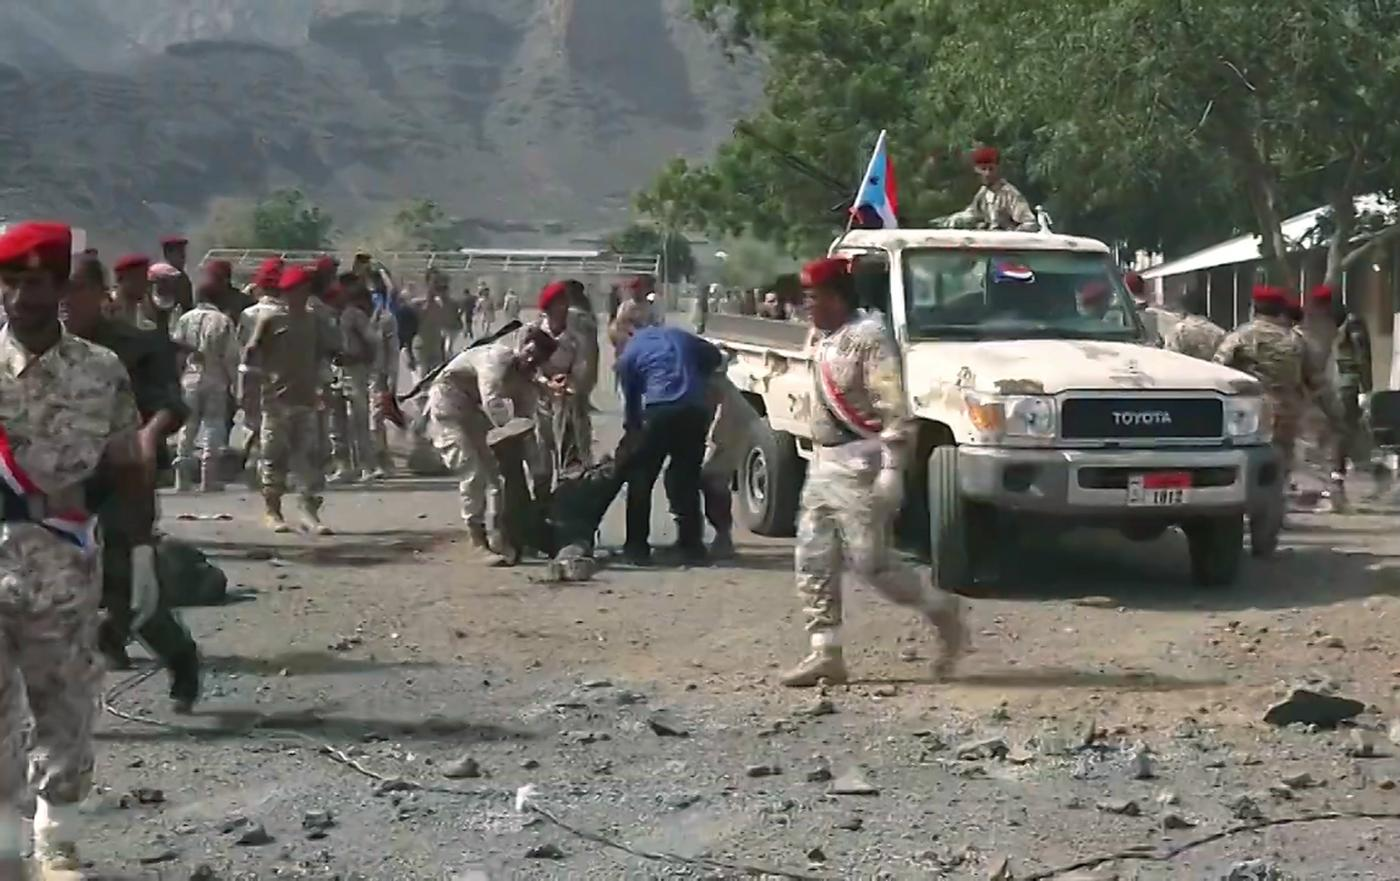 Houthis target military parade, kill 25 in Aden, Yemen